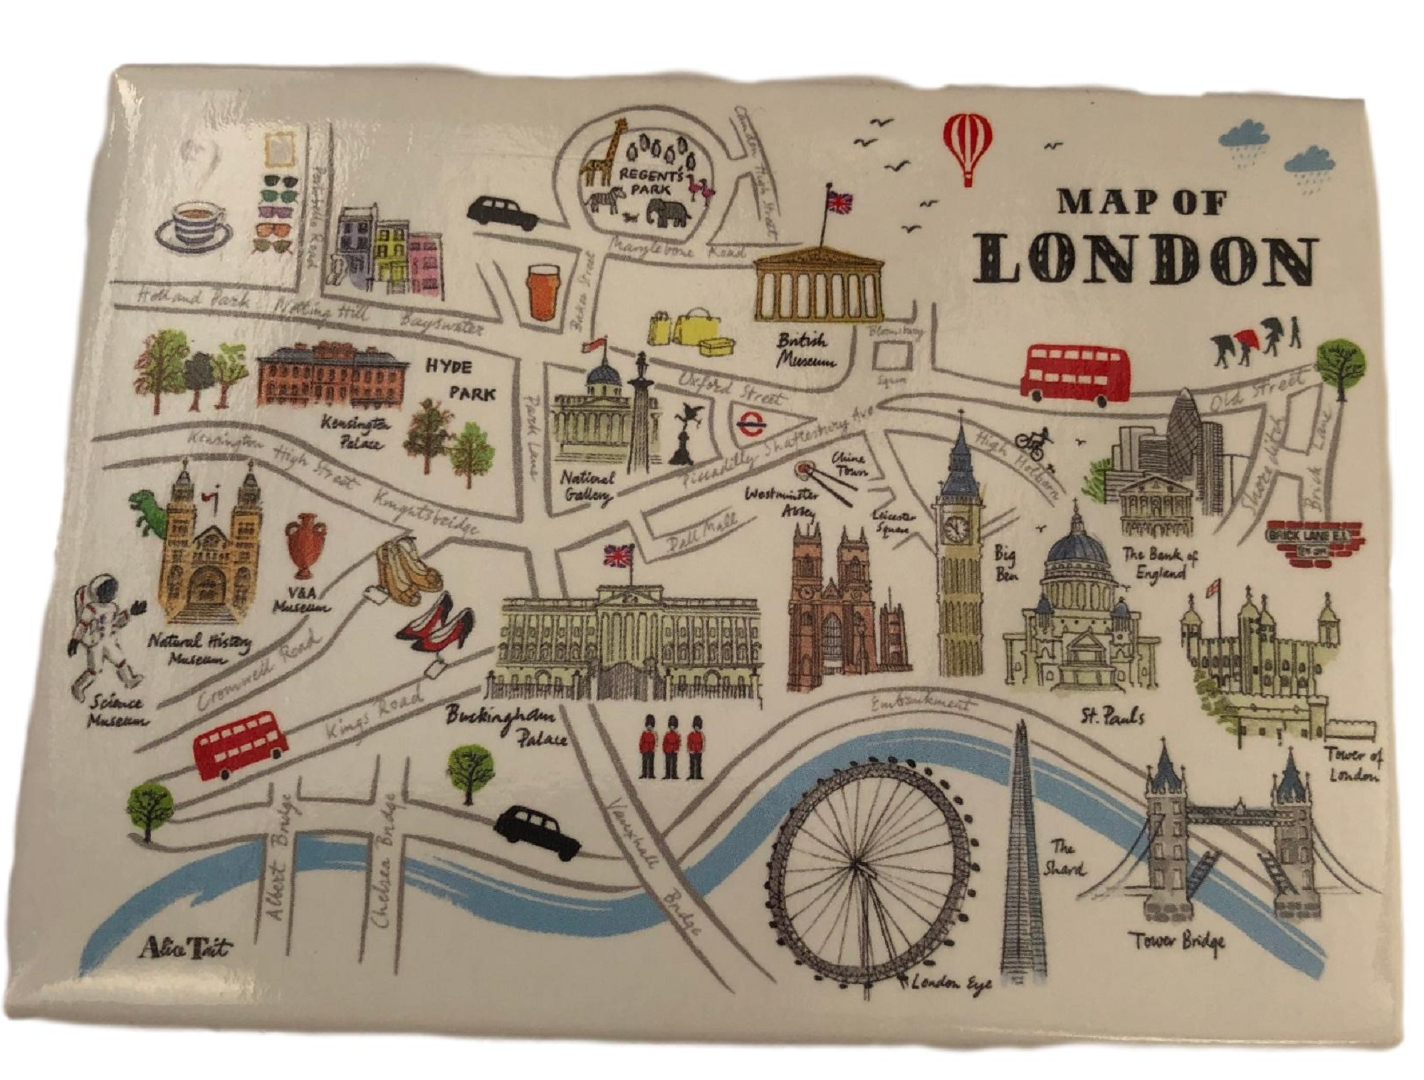 Alice Tait Artistic Map of London Fridge Magnet - British Heritage Brands